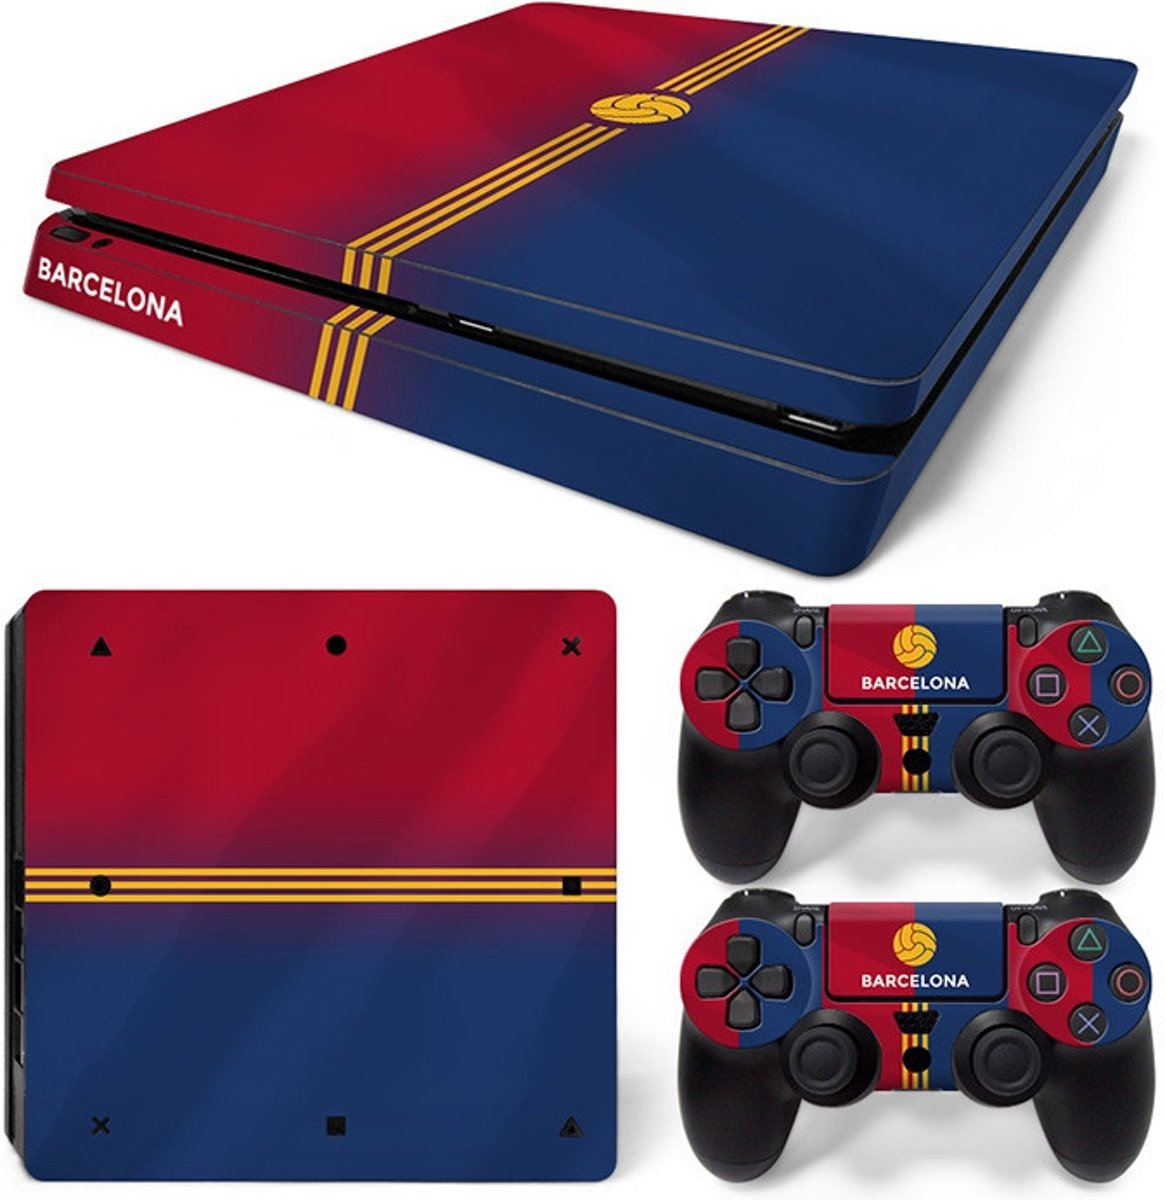 Barcelona - PS4 Slim Console Skins PlayStation Stickers